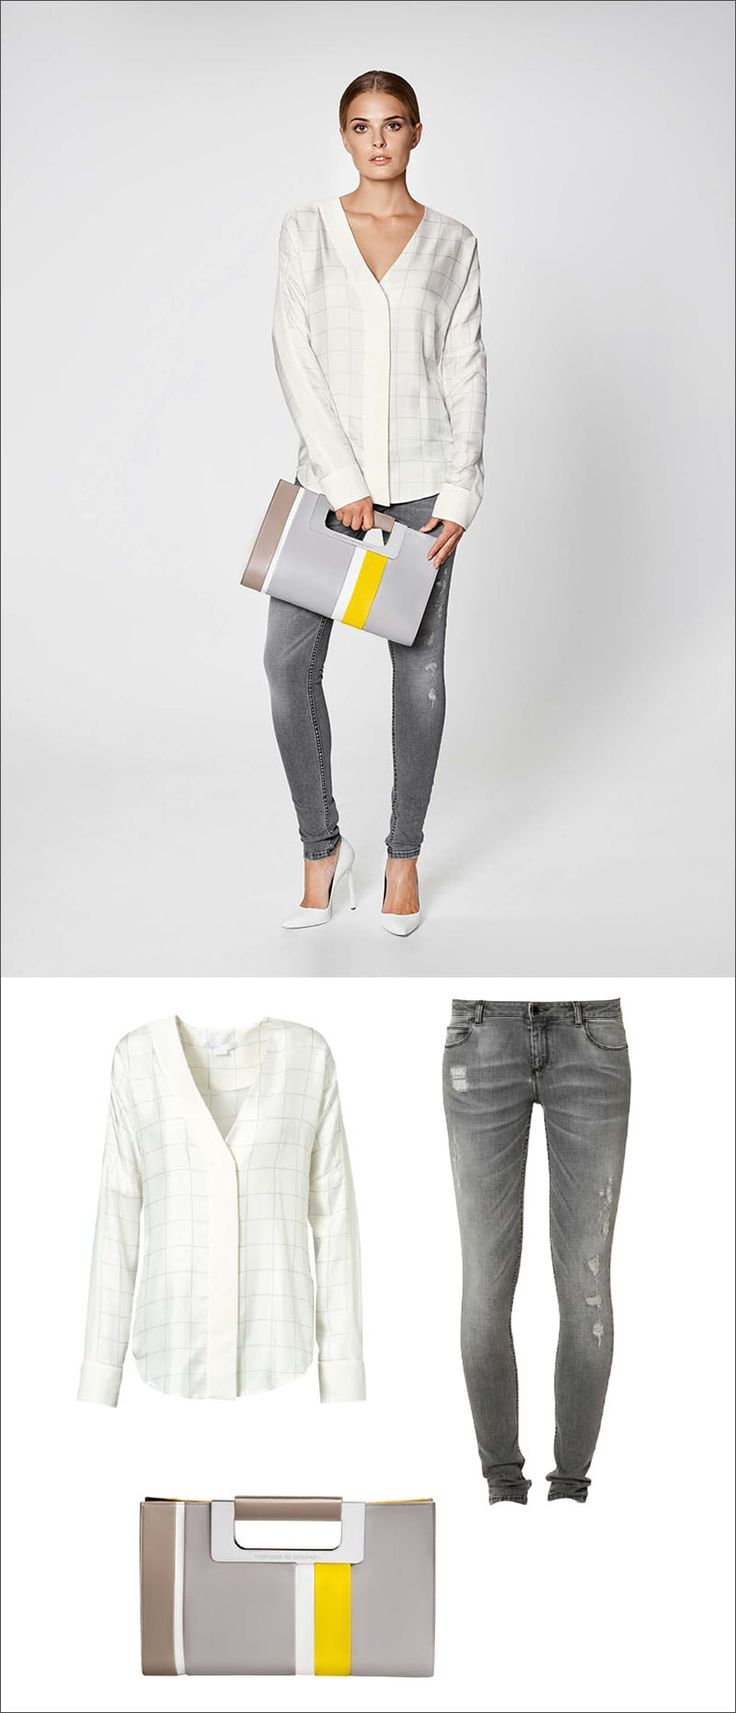 Women's Fashion Ideas - 12 Womens Outfits From Porsche Design's 2017 Spring/Summer Collection // A window pane blouse, ripped jeans, and a grey clutch with a pop of yellow create this versatile women's outfit.